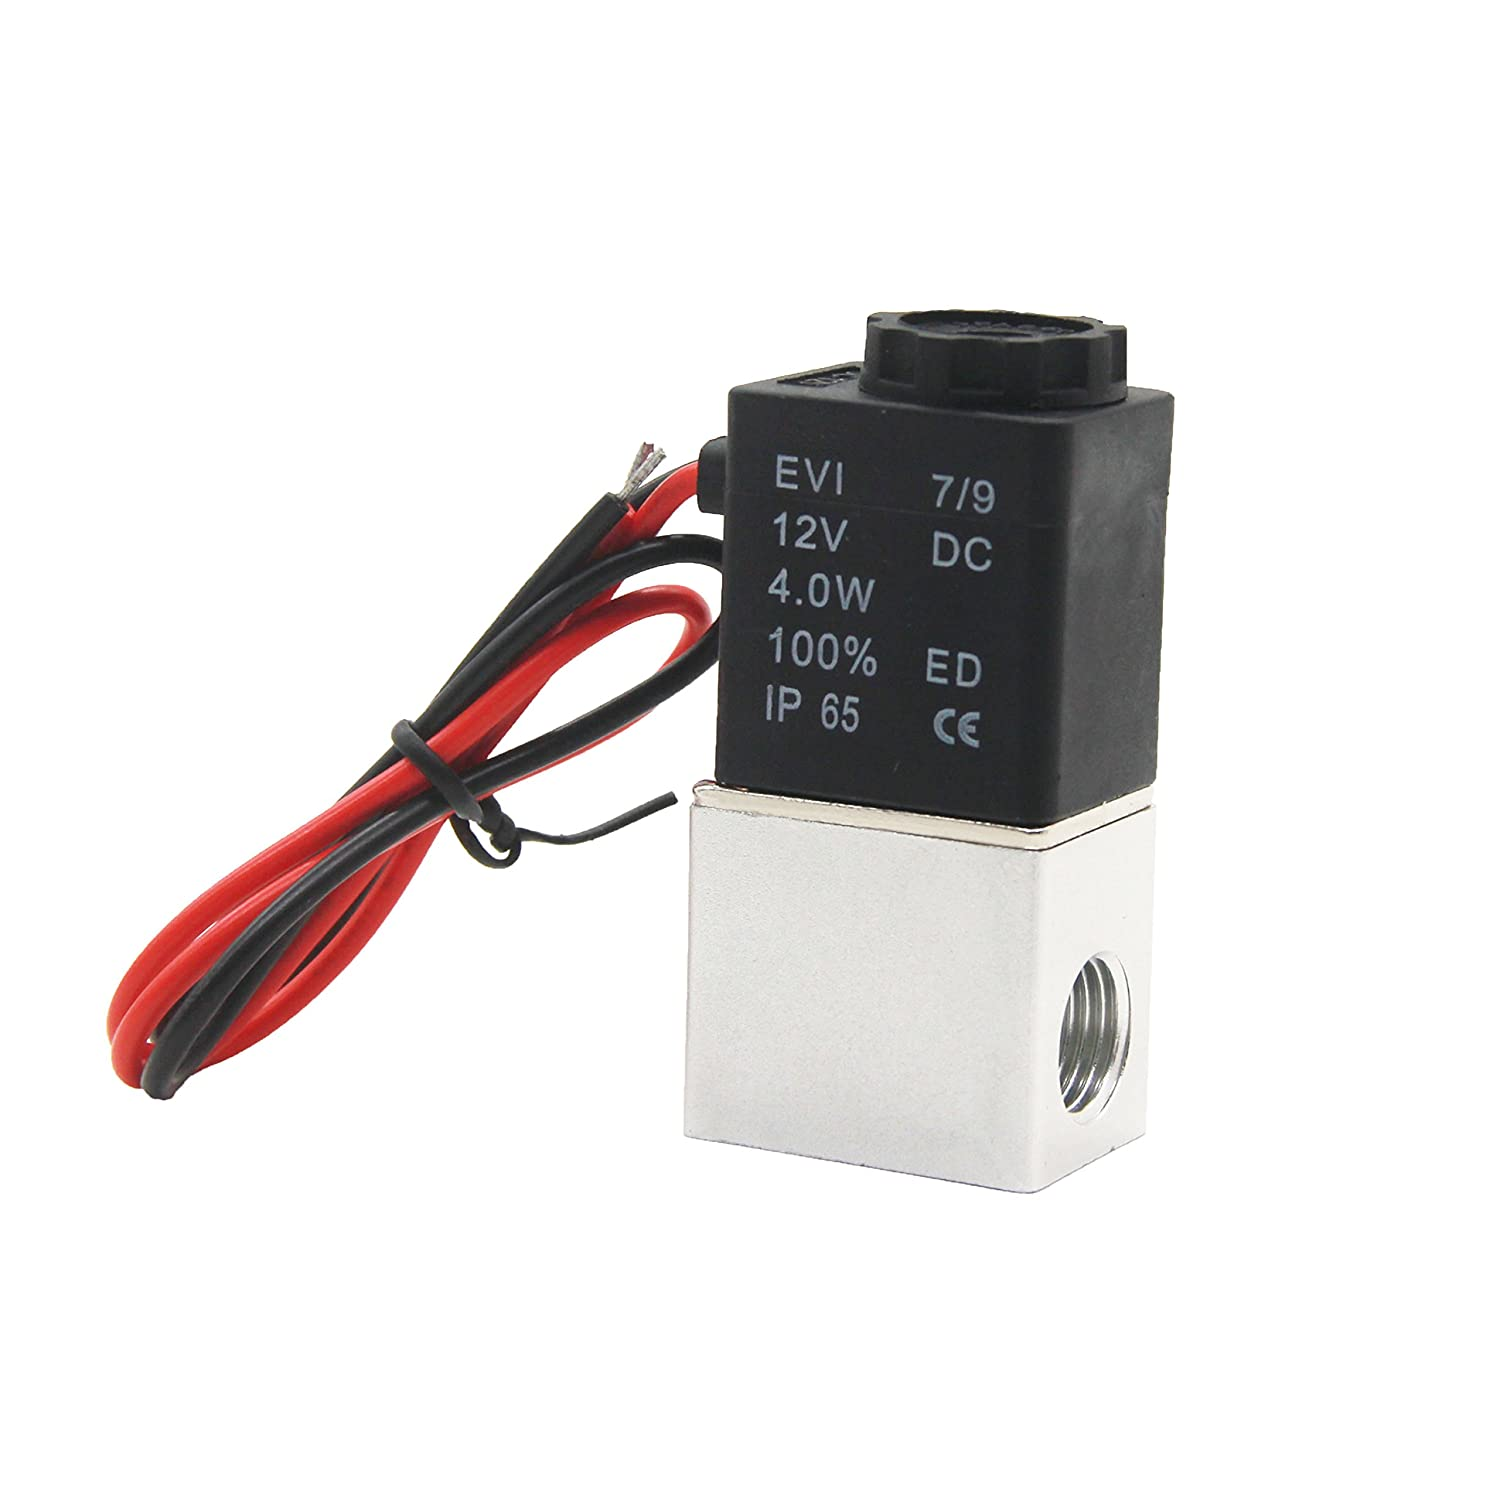 Joyway 1//4 12V DC 2 Way Pneumatic Aluminum Electric Solenoid Valve 2V025-08 Normally Closed Fast Response for Air Gas Water N//C